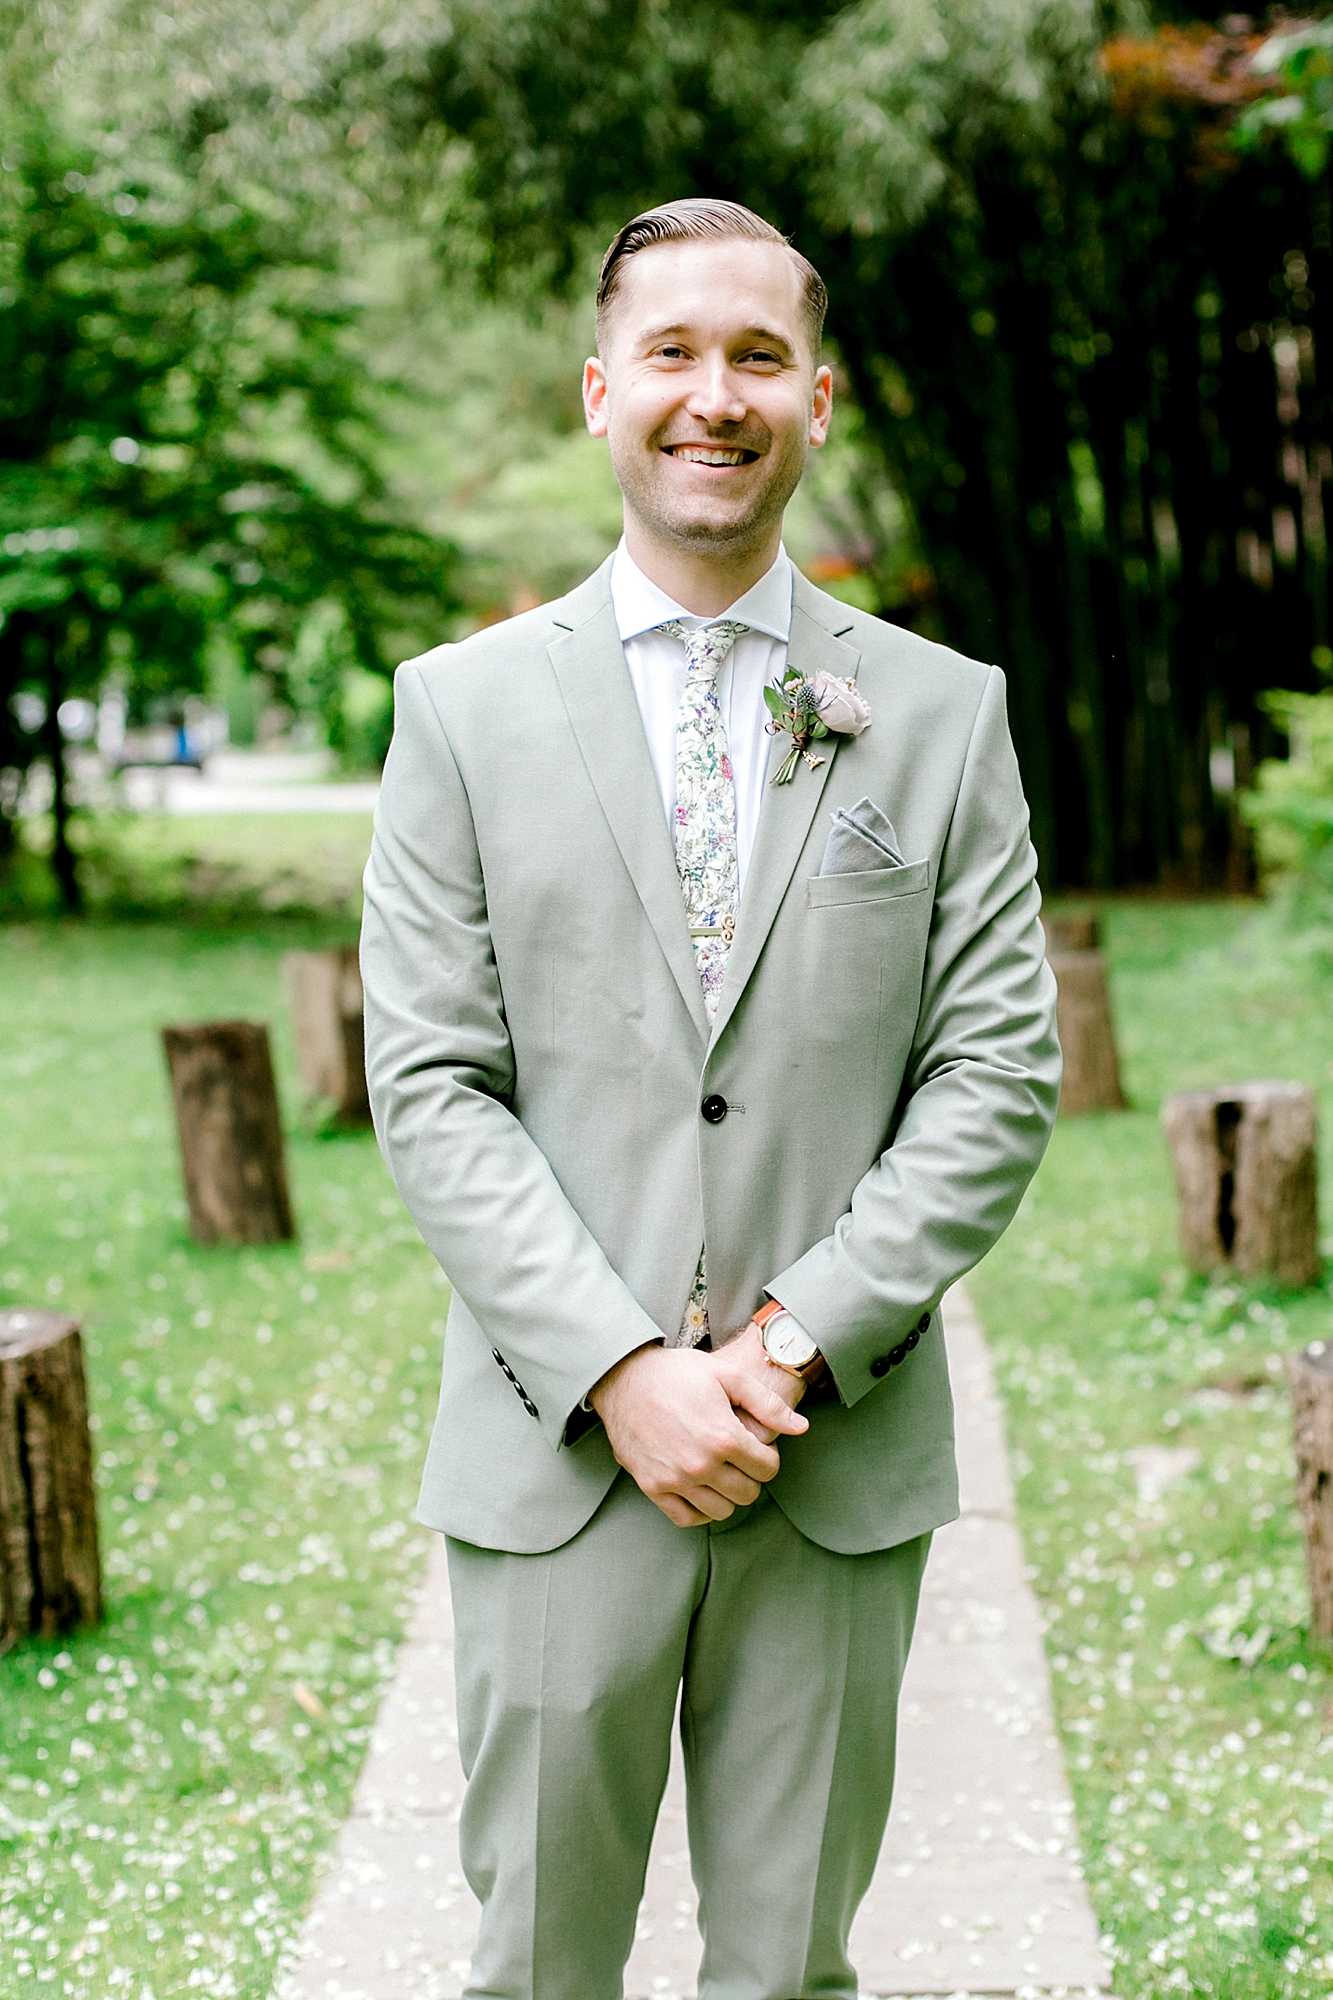 Intimate and Sweet Estate Wedding Photography by Magdalena Studios 0014